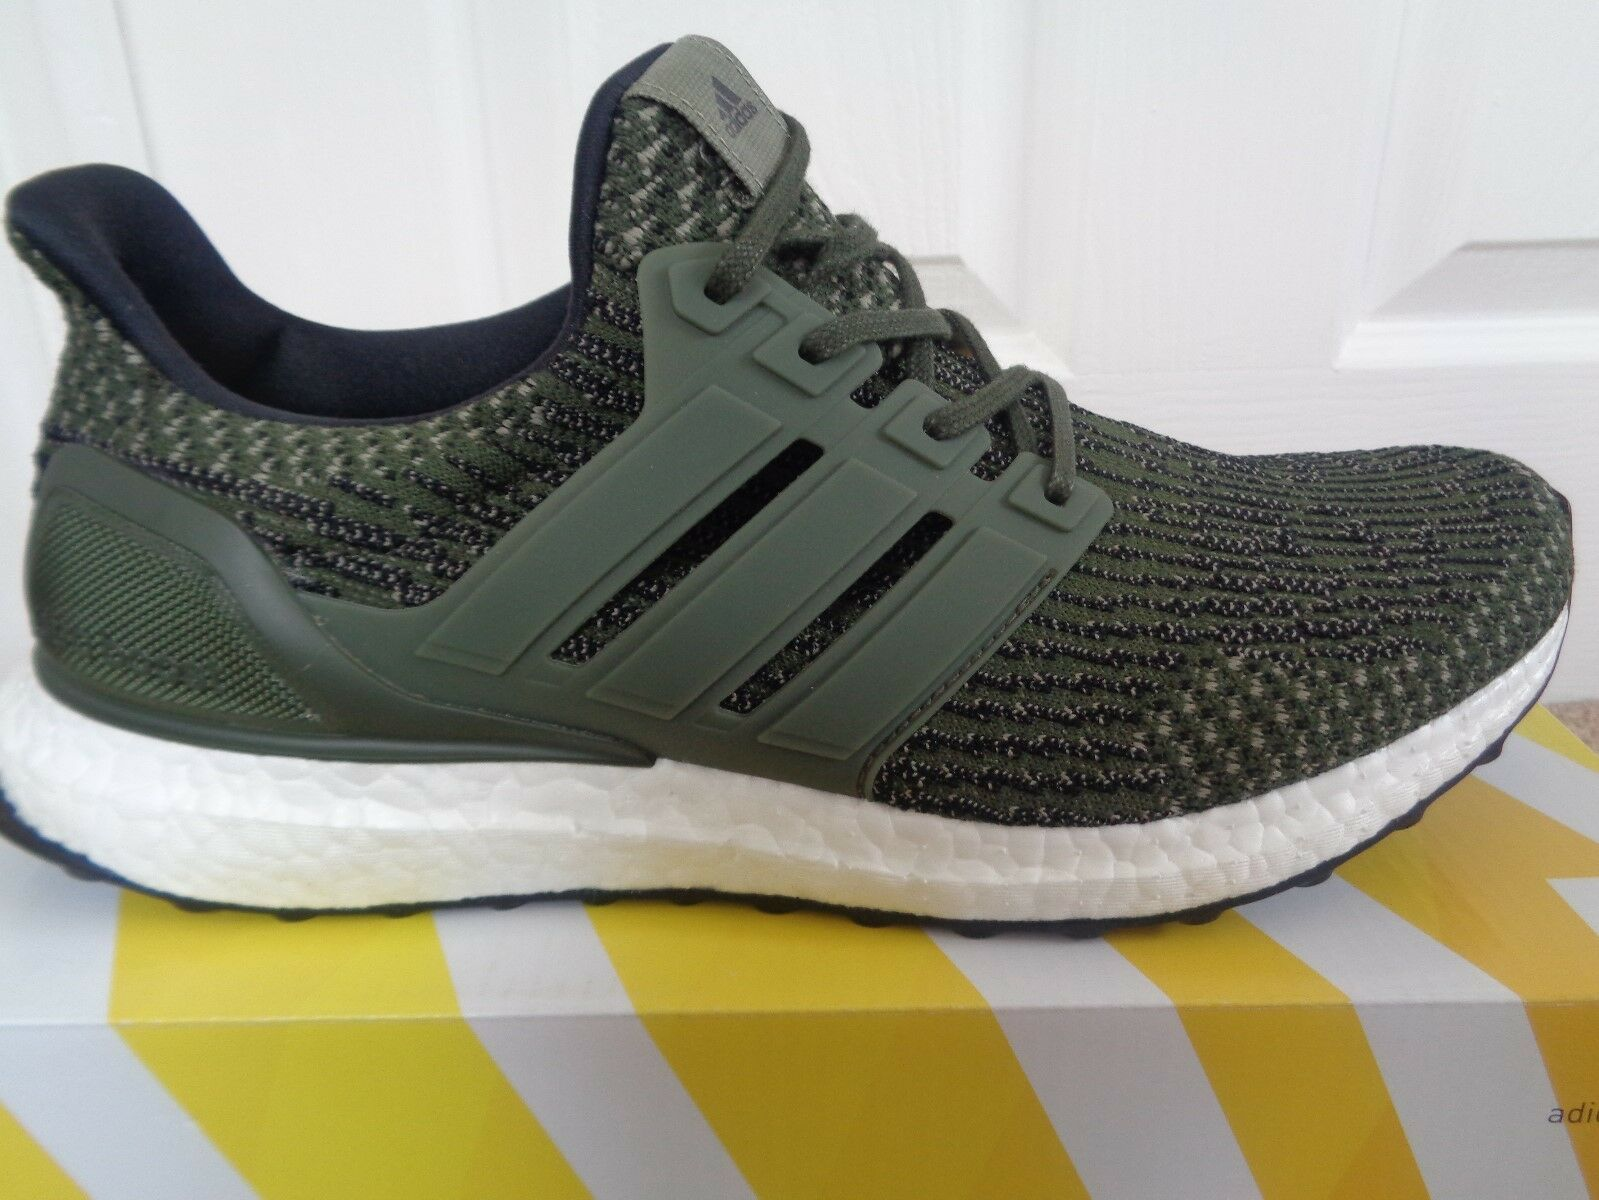 NEW Adidas Ultra Boost 3.0 M Trace Olive Khaki Cargo Leather Cage White S82018